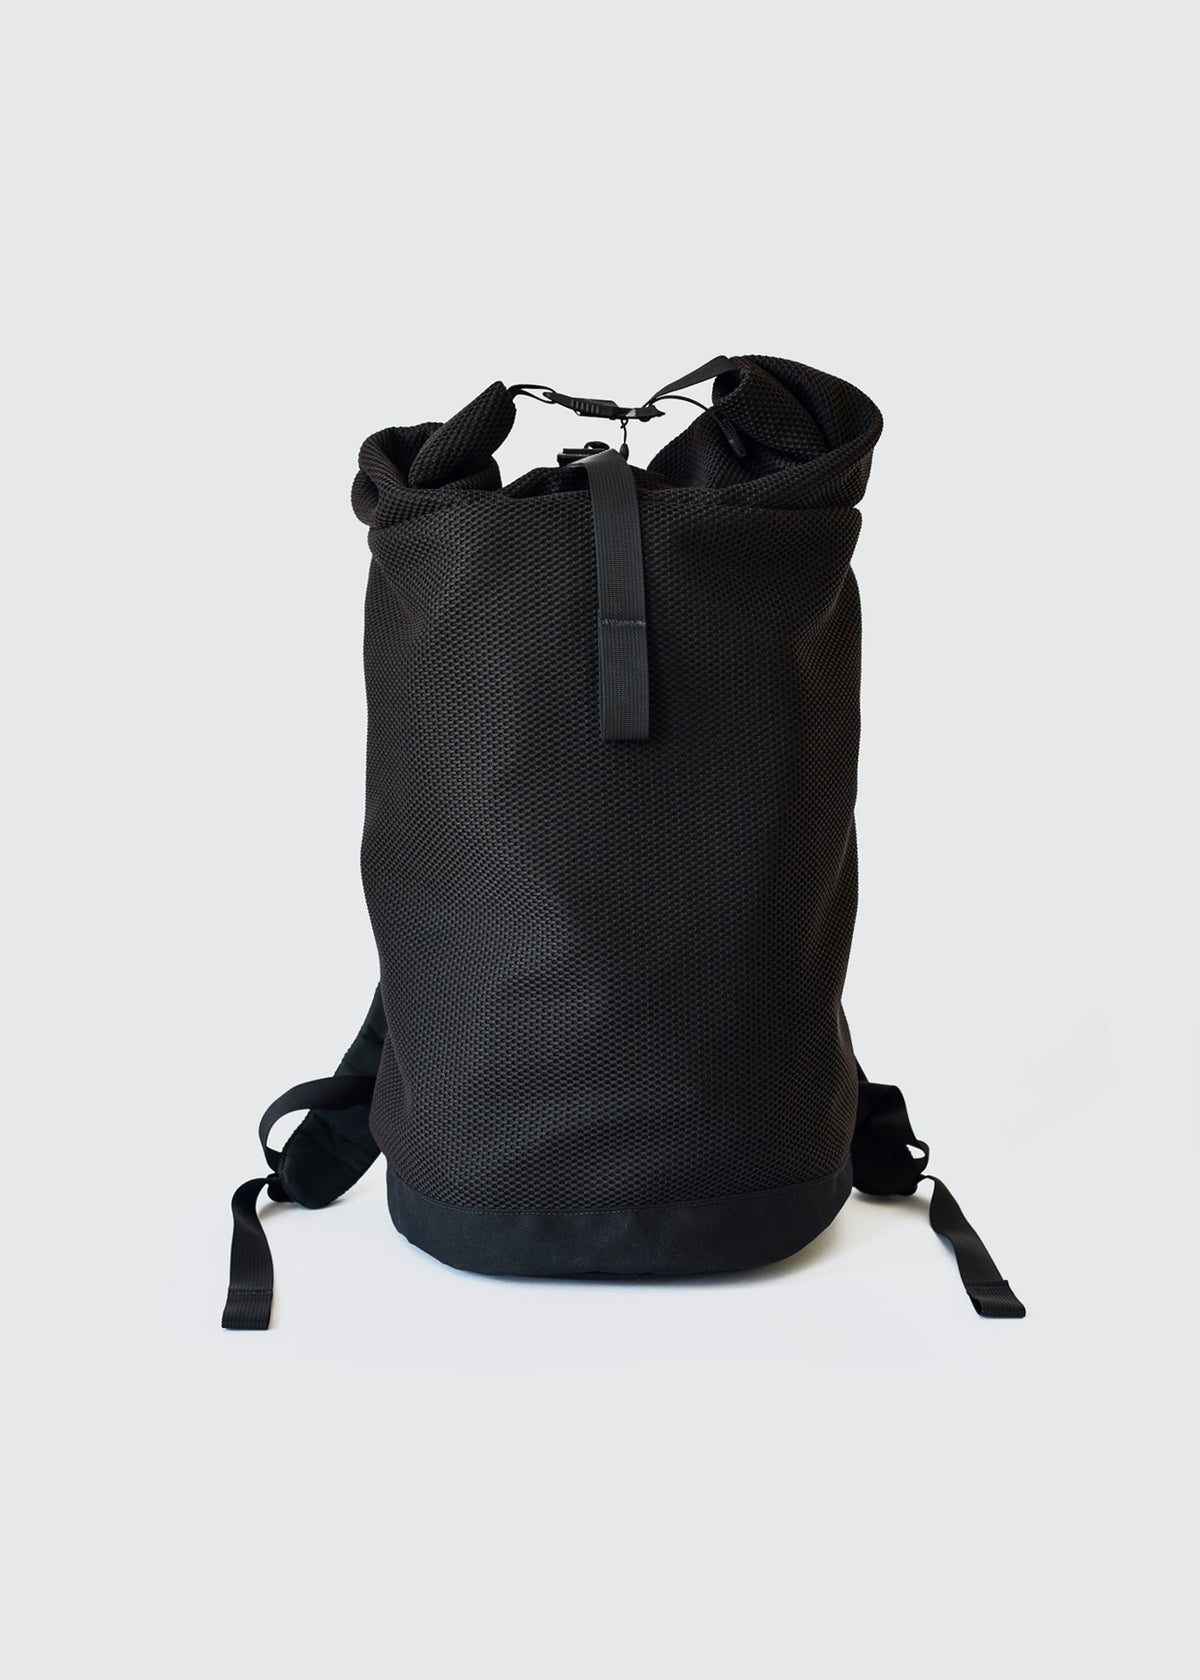 A03 - ROLL TOP PACK - BLACK AFT